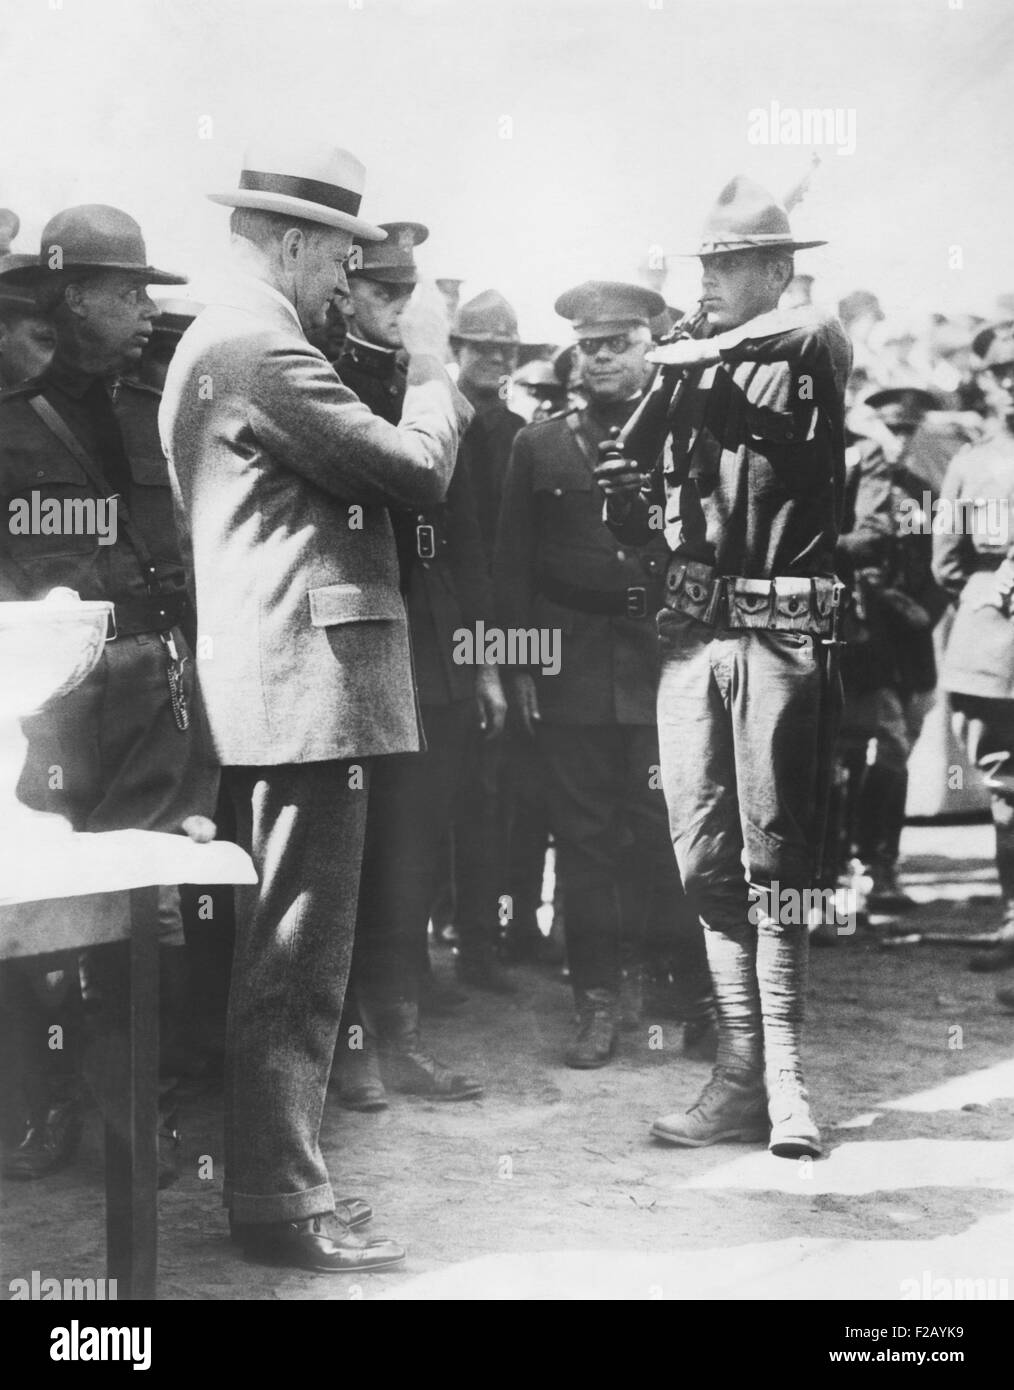 Cpl. John Coolidge salutes his Commander in Chief, President Calvin Coolidge. Aug. 29, 1925, He was at the Citizens - Stock Image